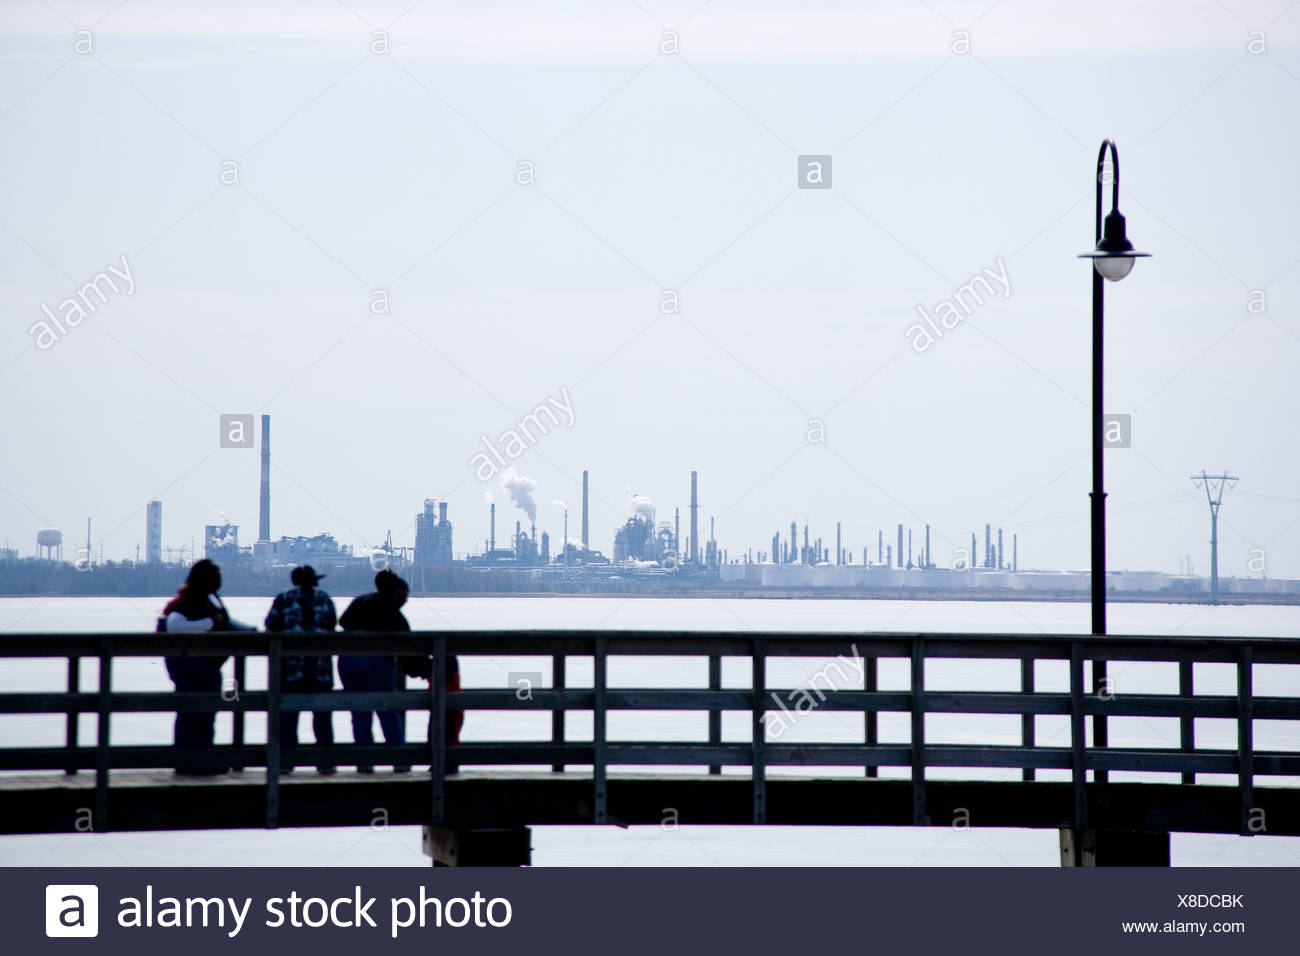 Dealware Bay scenic view darkened by industrial plants. - Stock Image